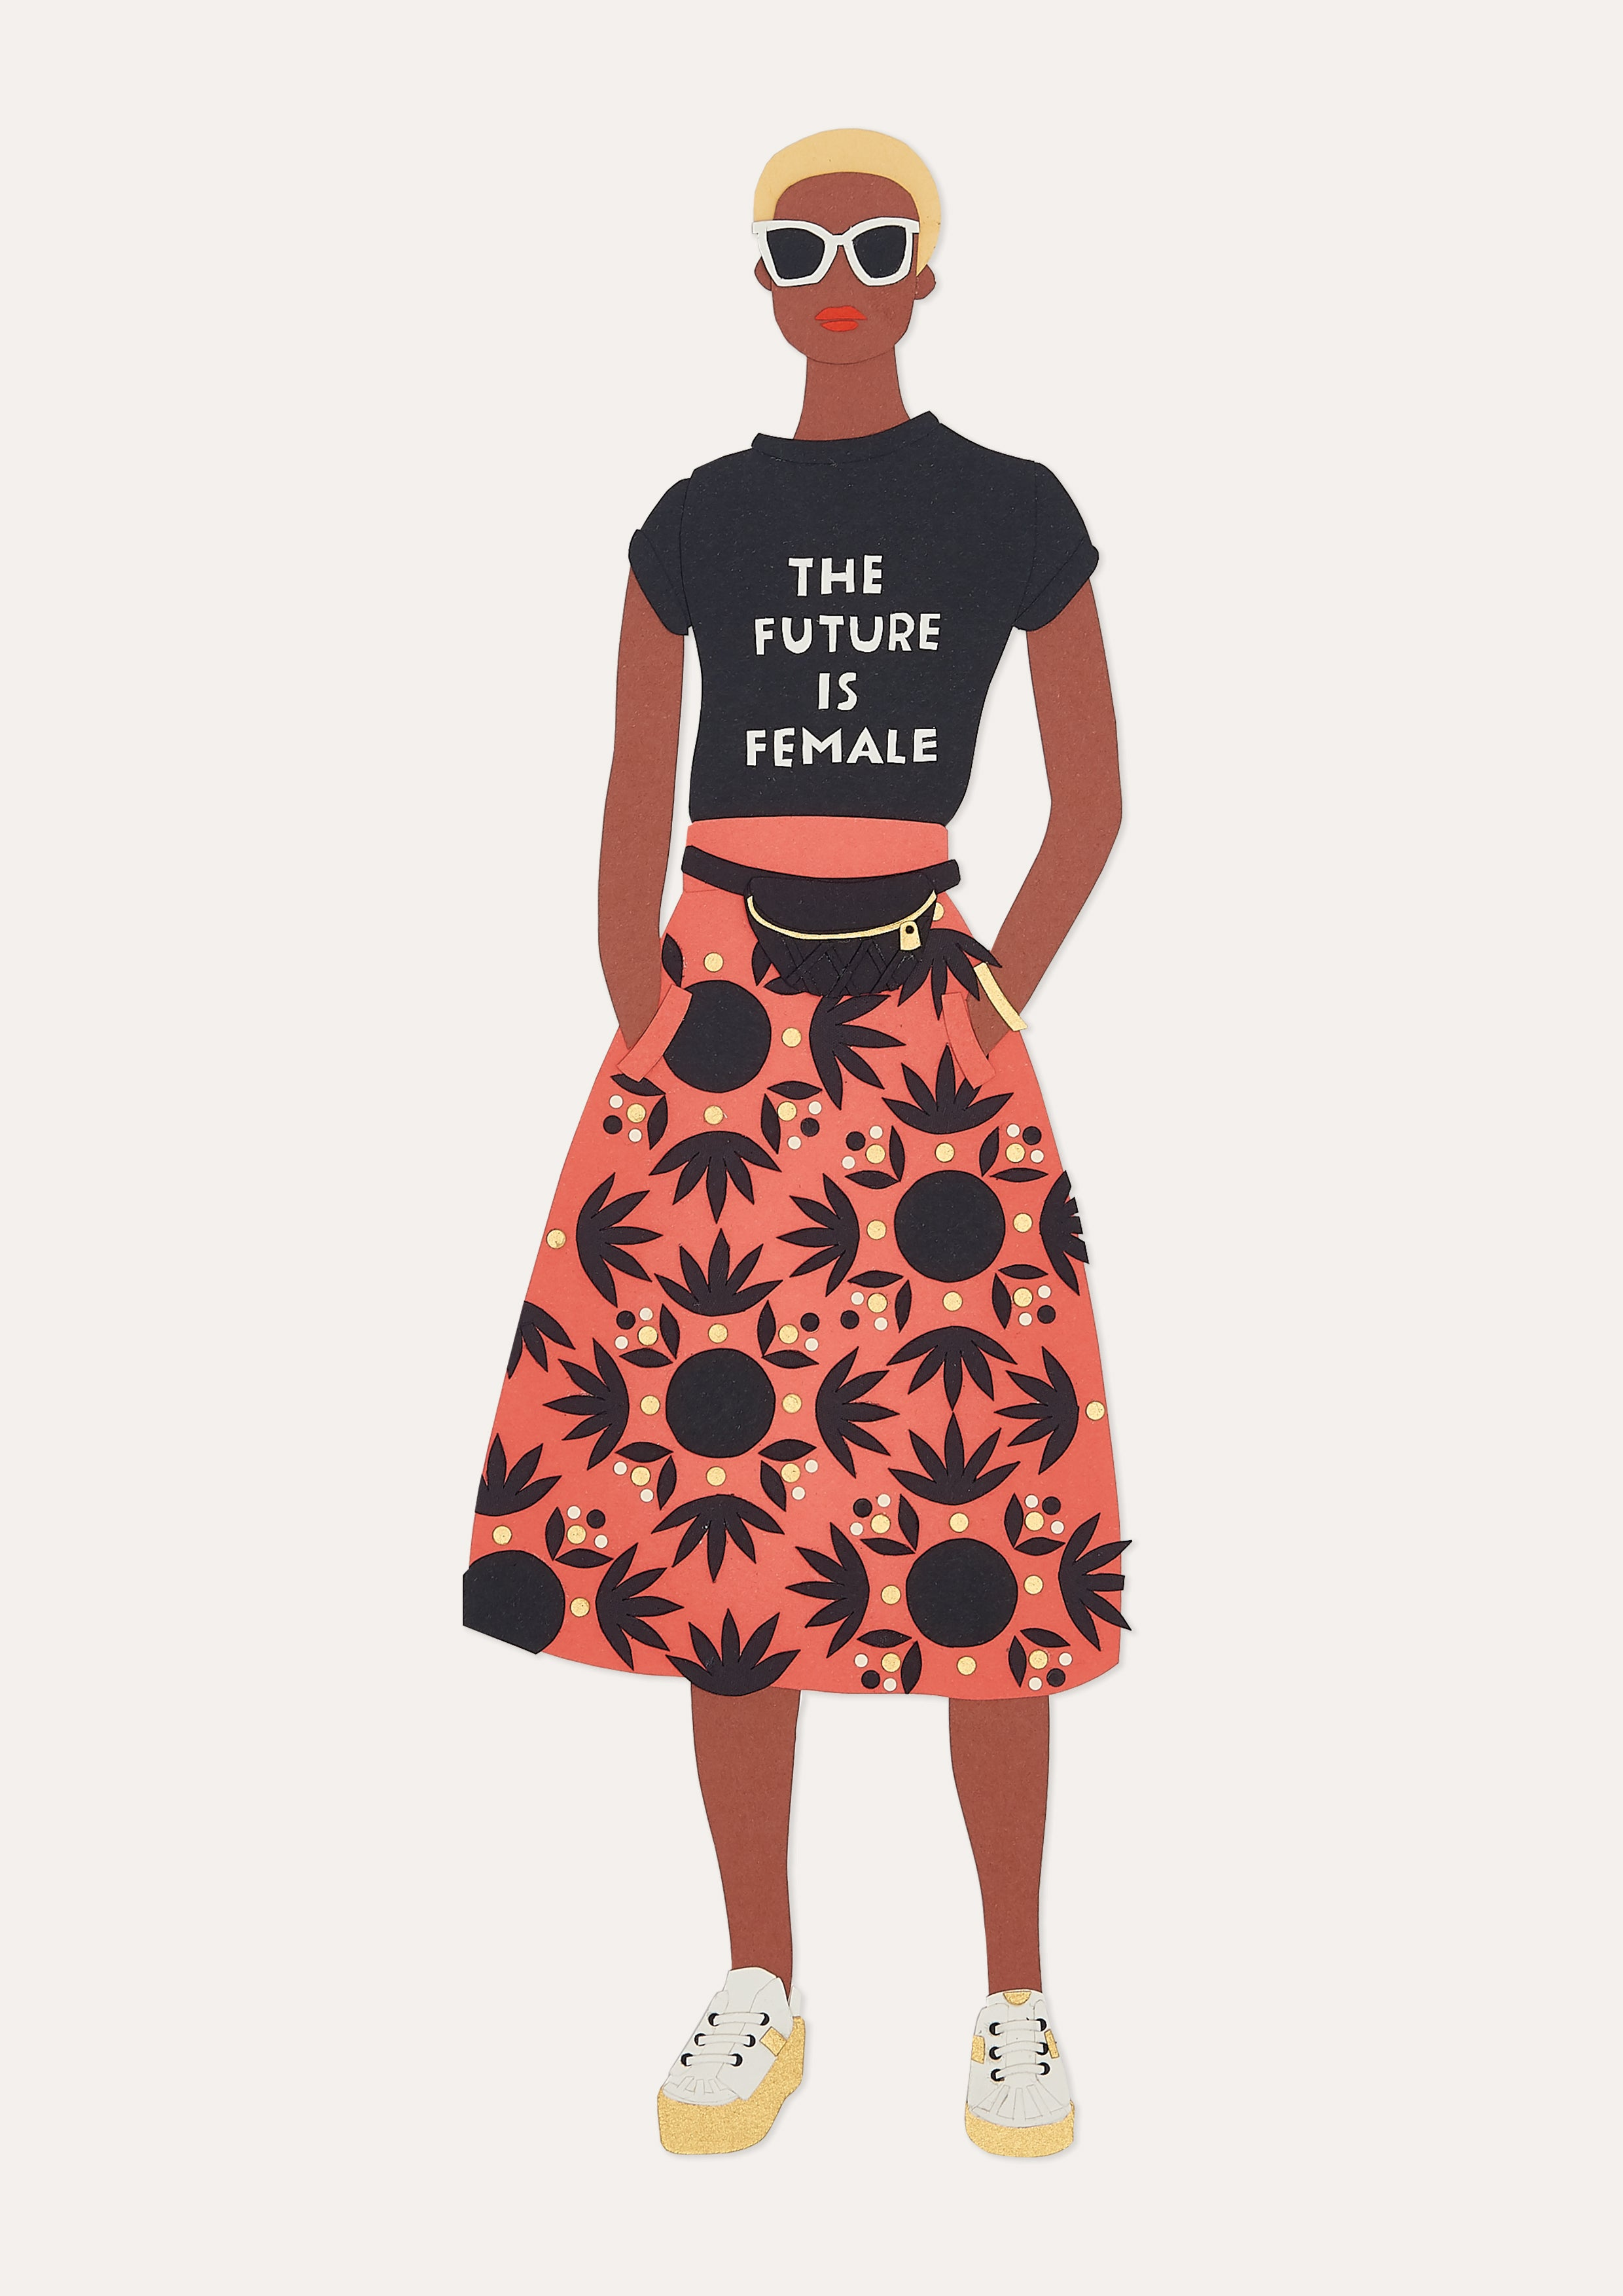 The Future Is Female print